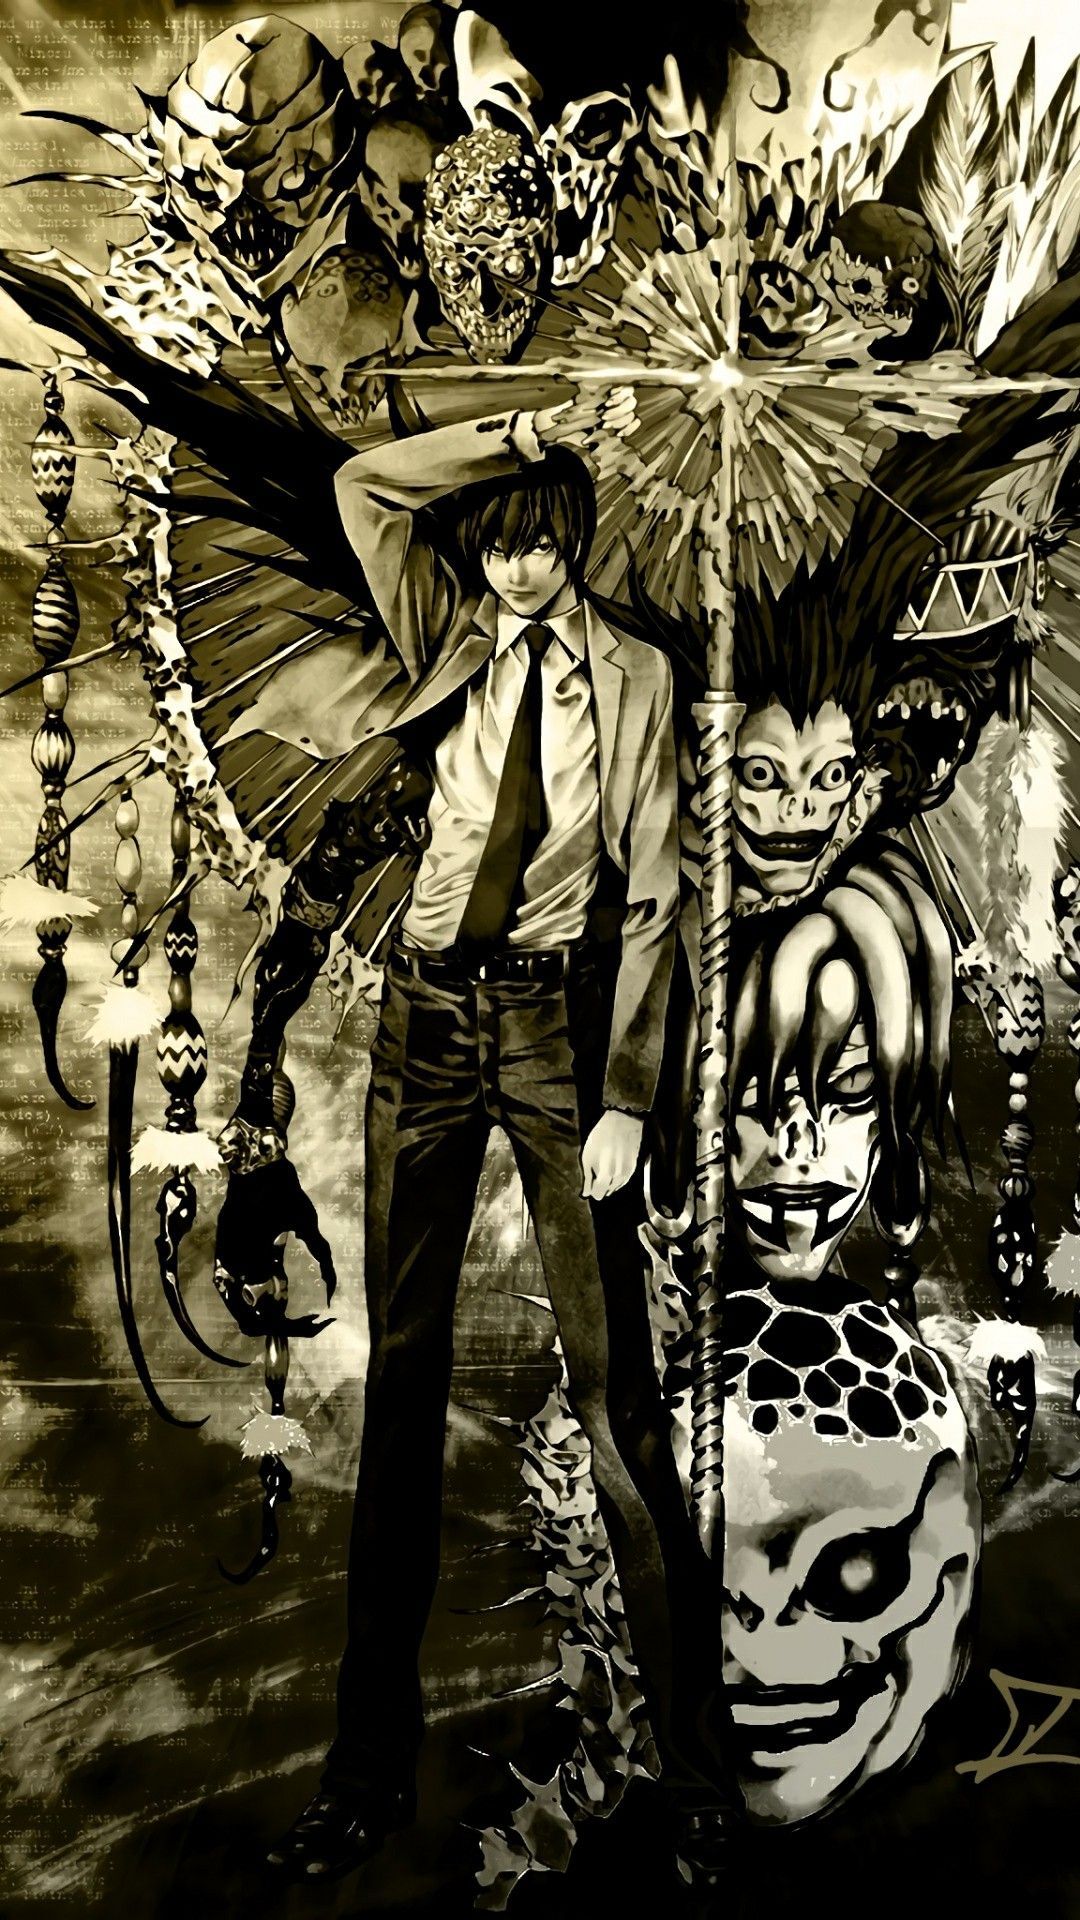 Pin By Lavi On Death Note Death Note Light Death Note Death Note Manga